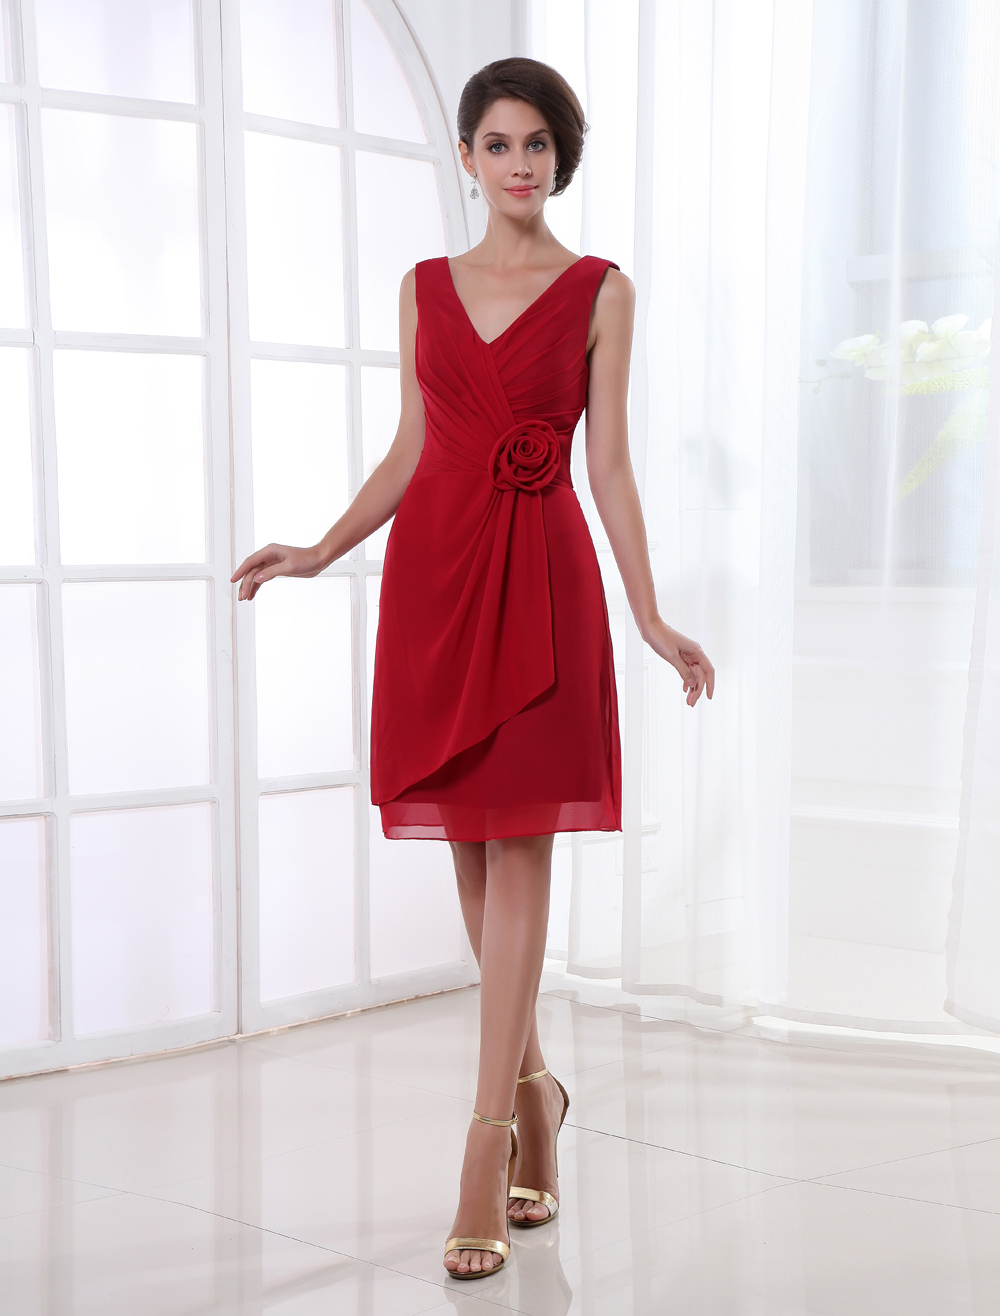 Sheath Burgundy Chiffon Flower V-Neck Knee-Length Bridesmaid Dress For Wedding